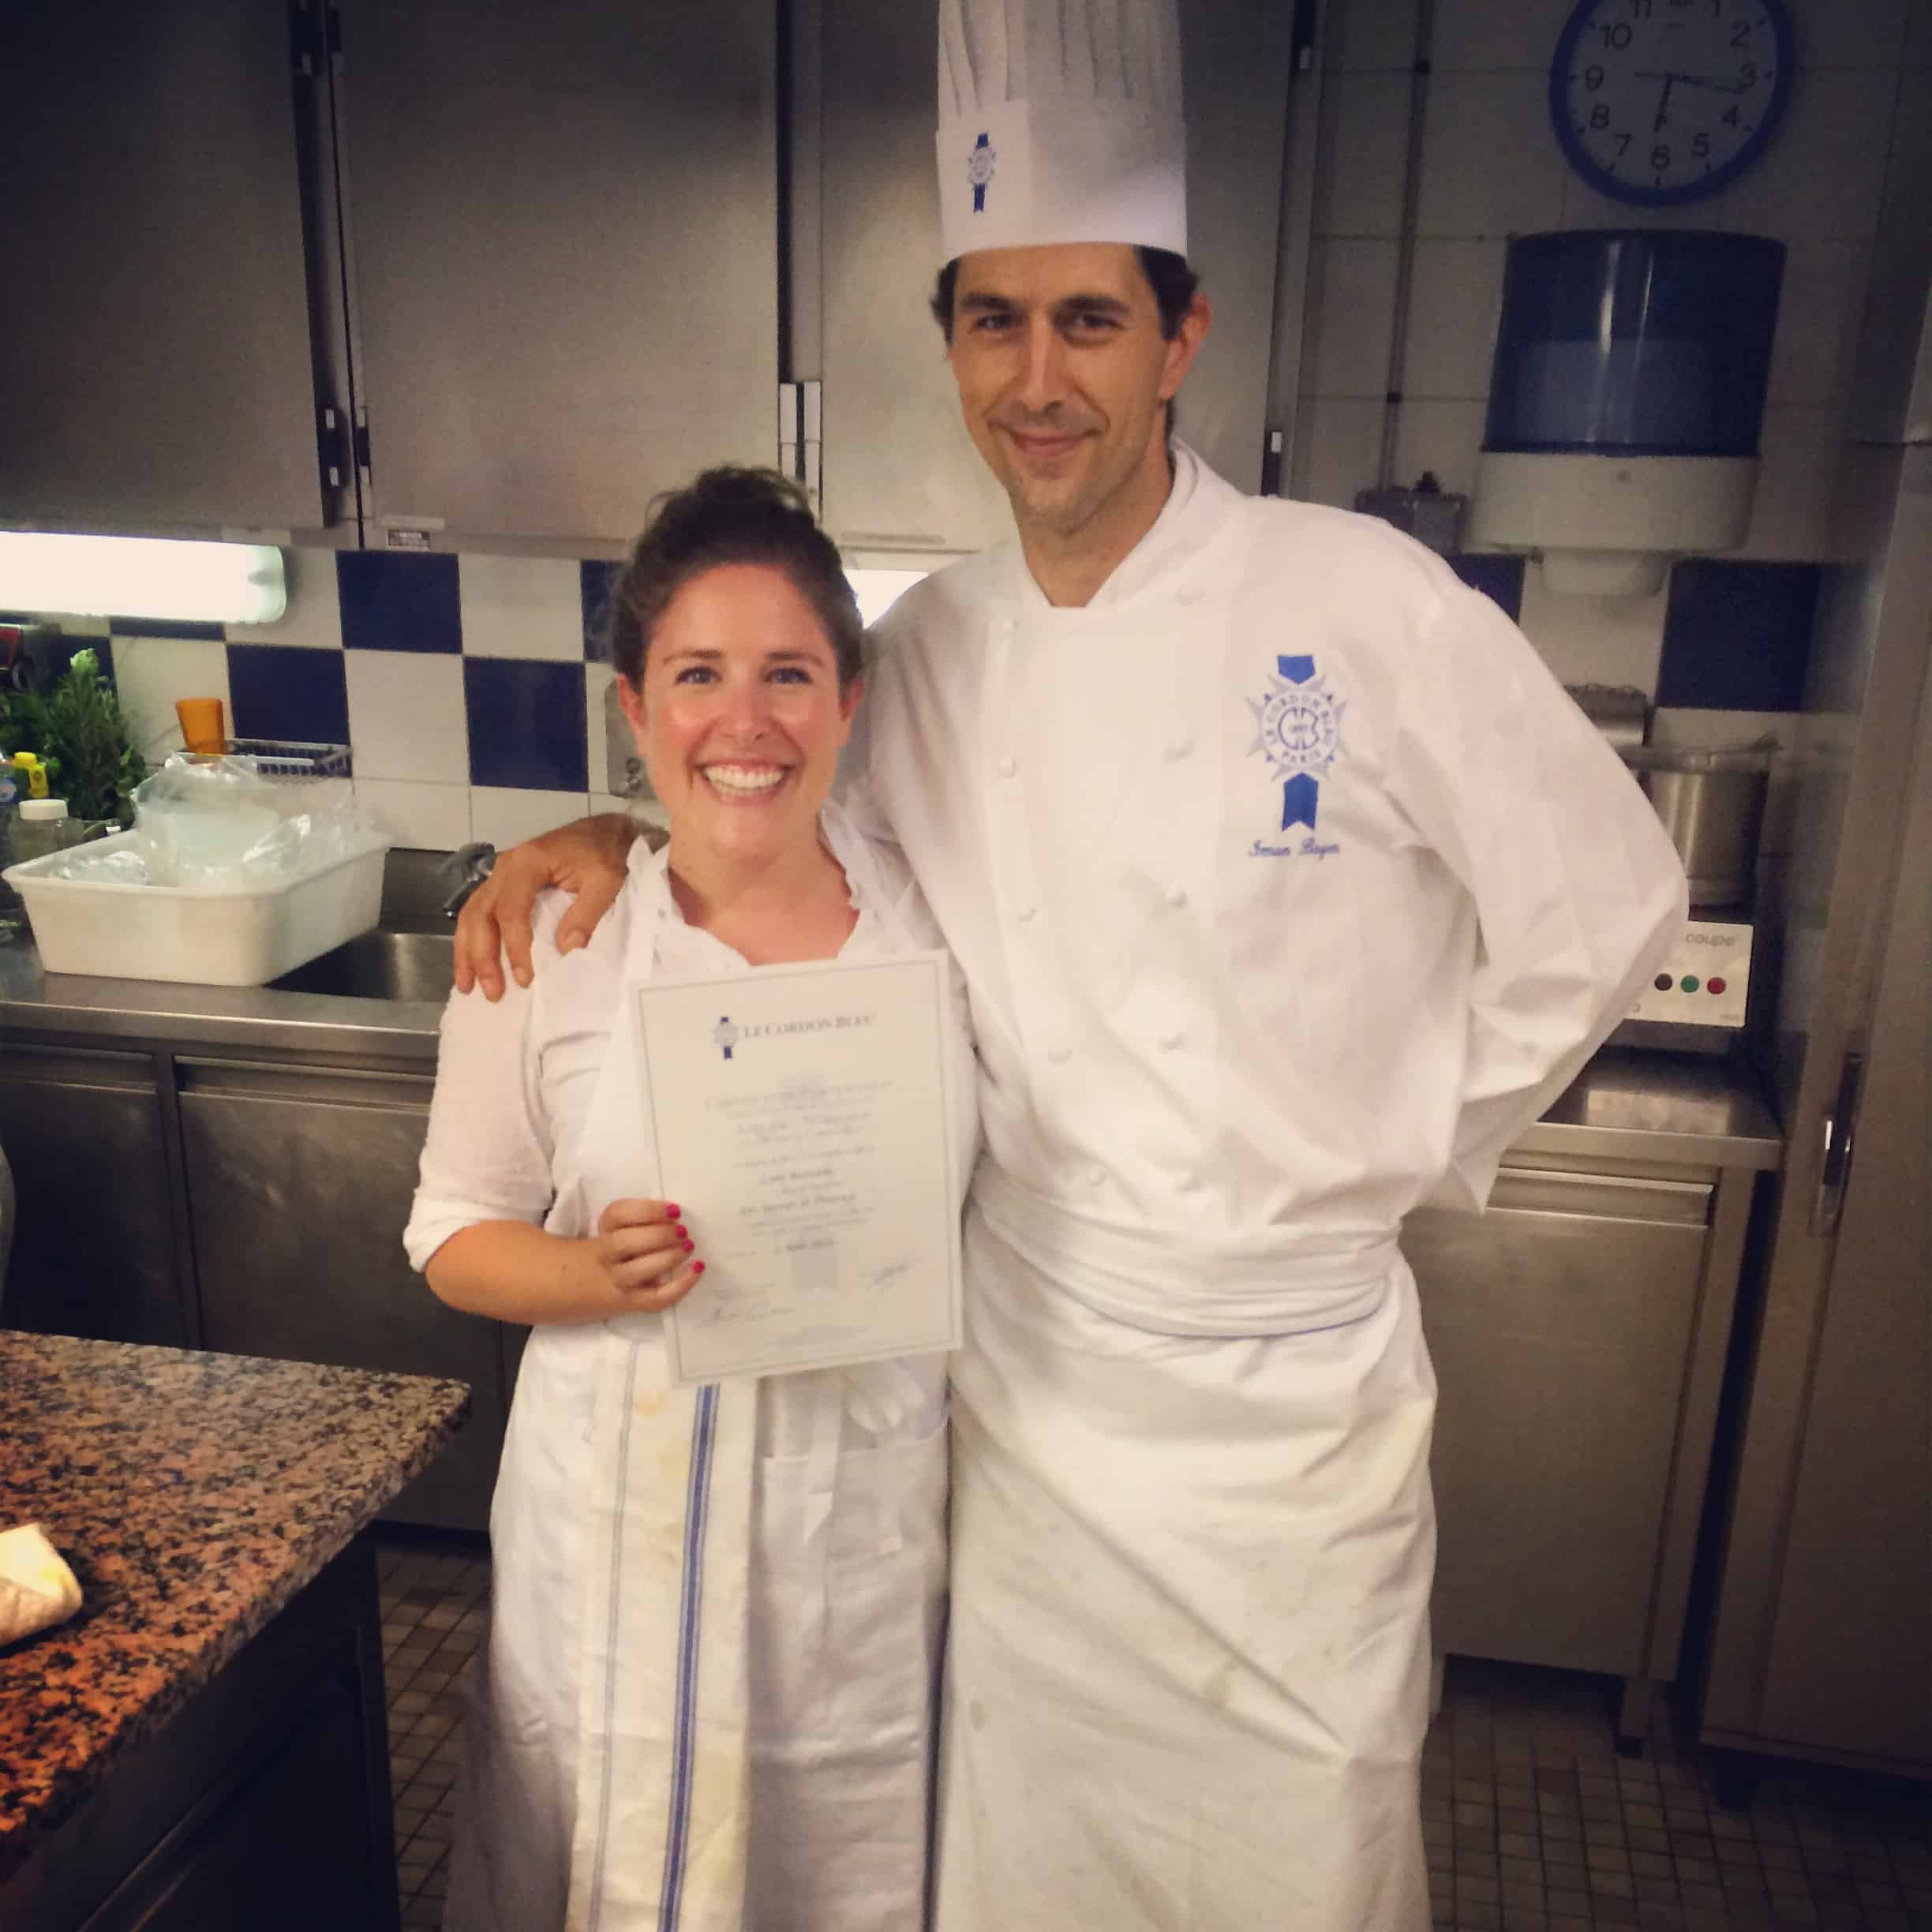 What I Learned From Cooking Lessons At the Cordon Bleu